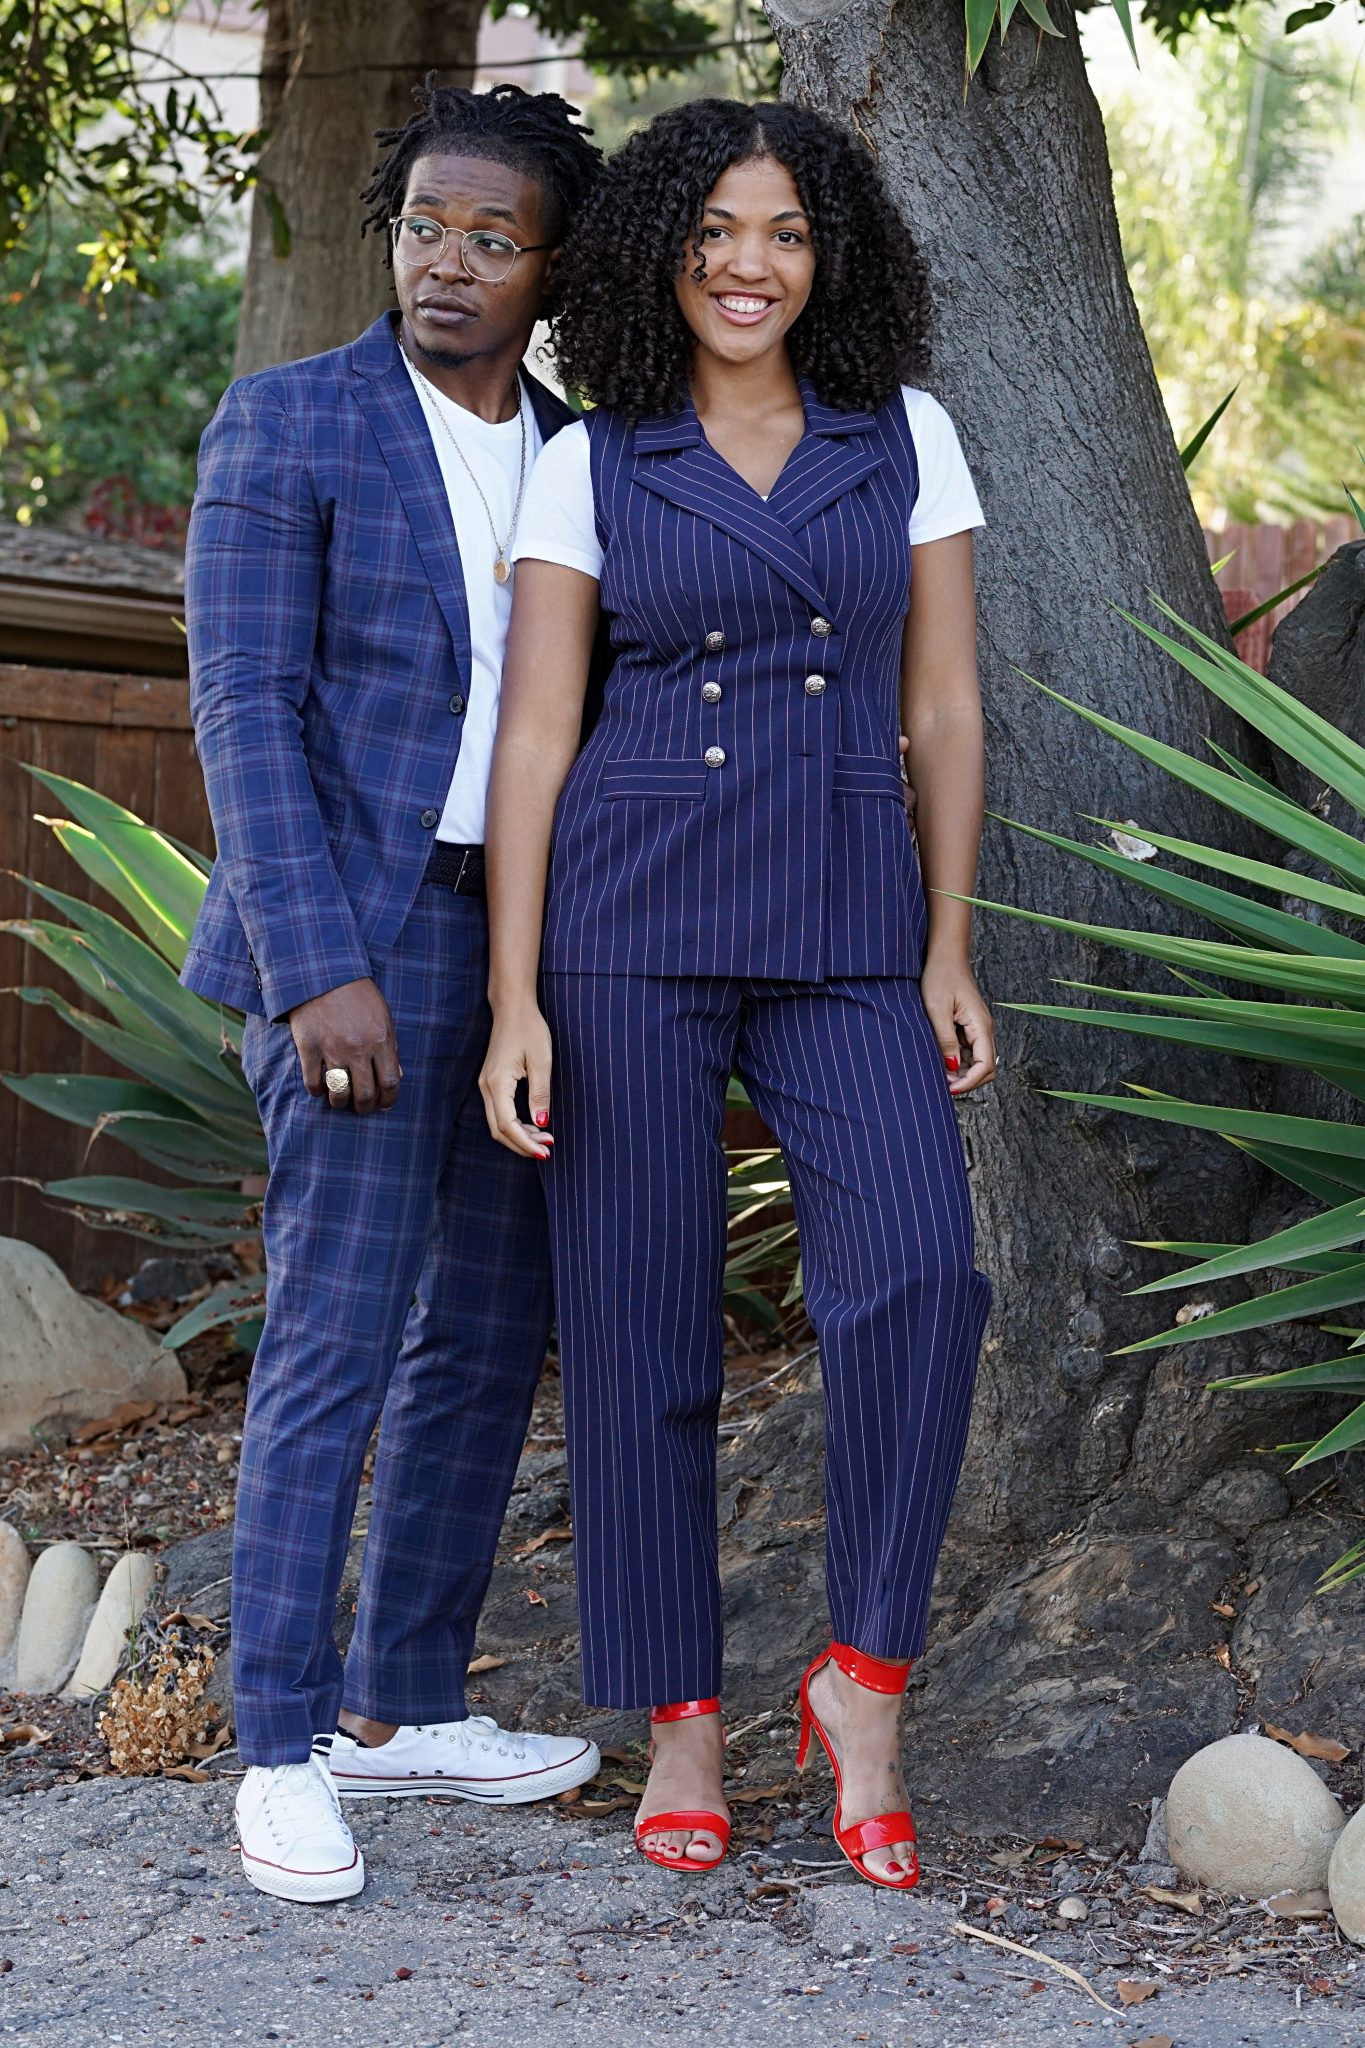 casually-tailored-date night-plaid-cotton-black-couple-wearing-suits-summer-suiting-summer-outfit-ideas